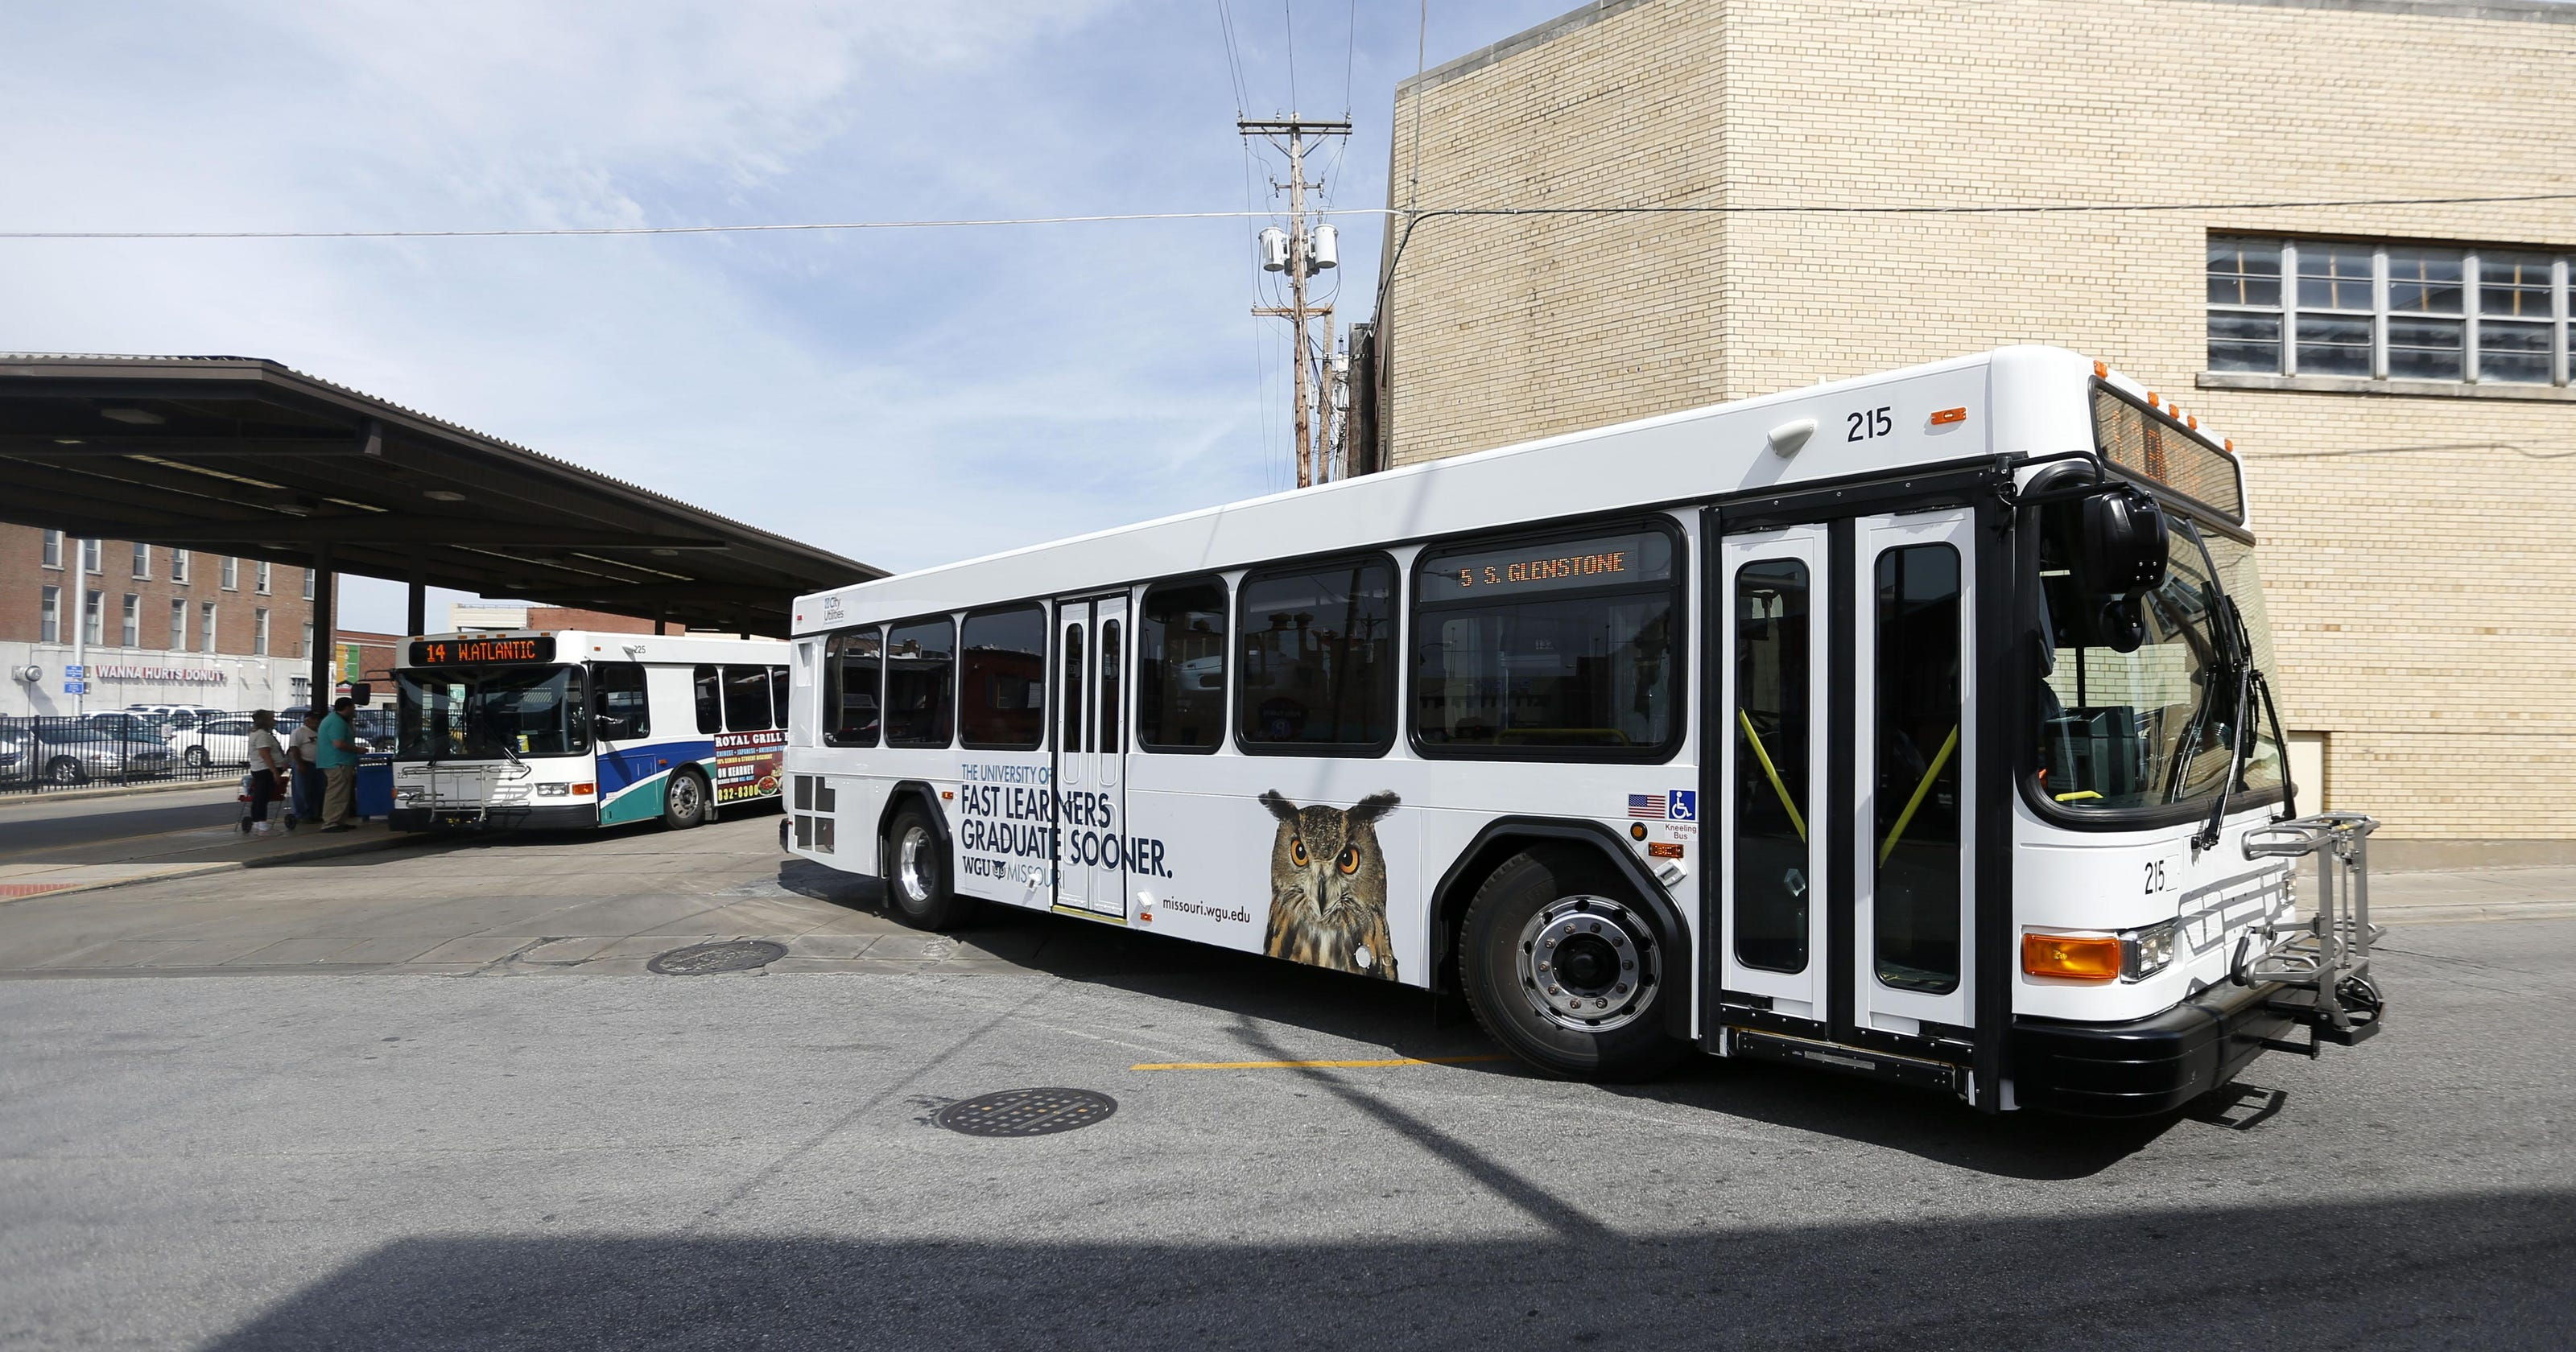 with changes coming to city bus routes, now's the time to speak up